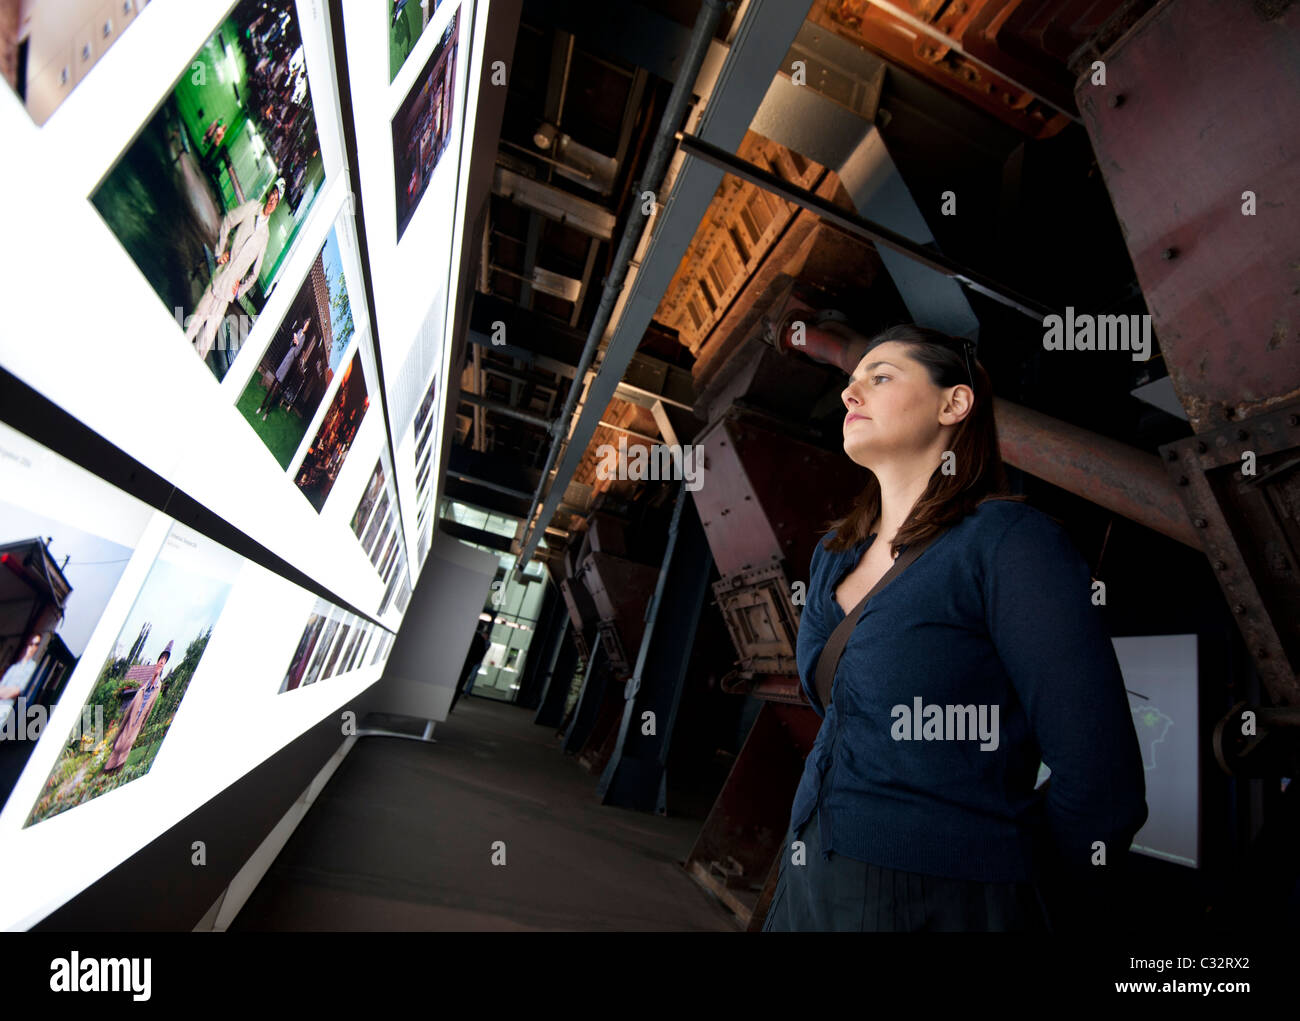 Art exhibition at Interior of former coal mine at Zollverein in Essen Germany now UNESCO World Heritage Site - Stock Image